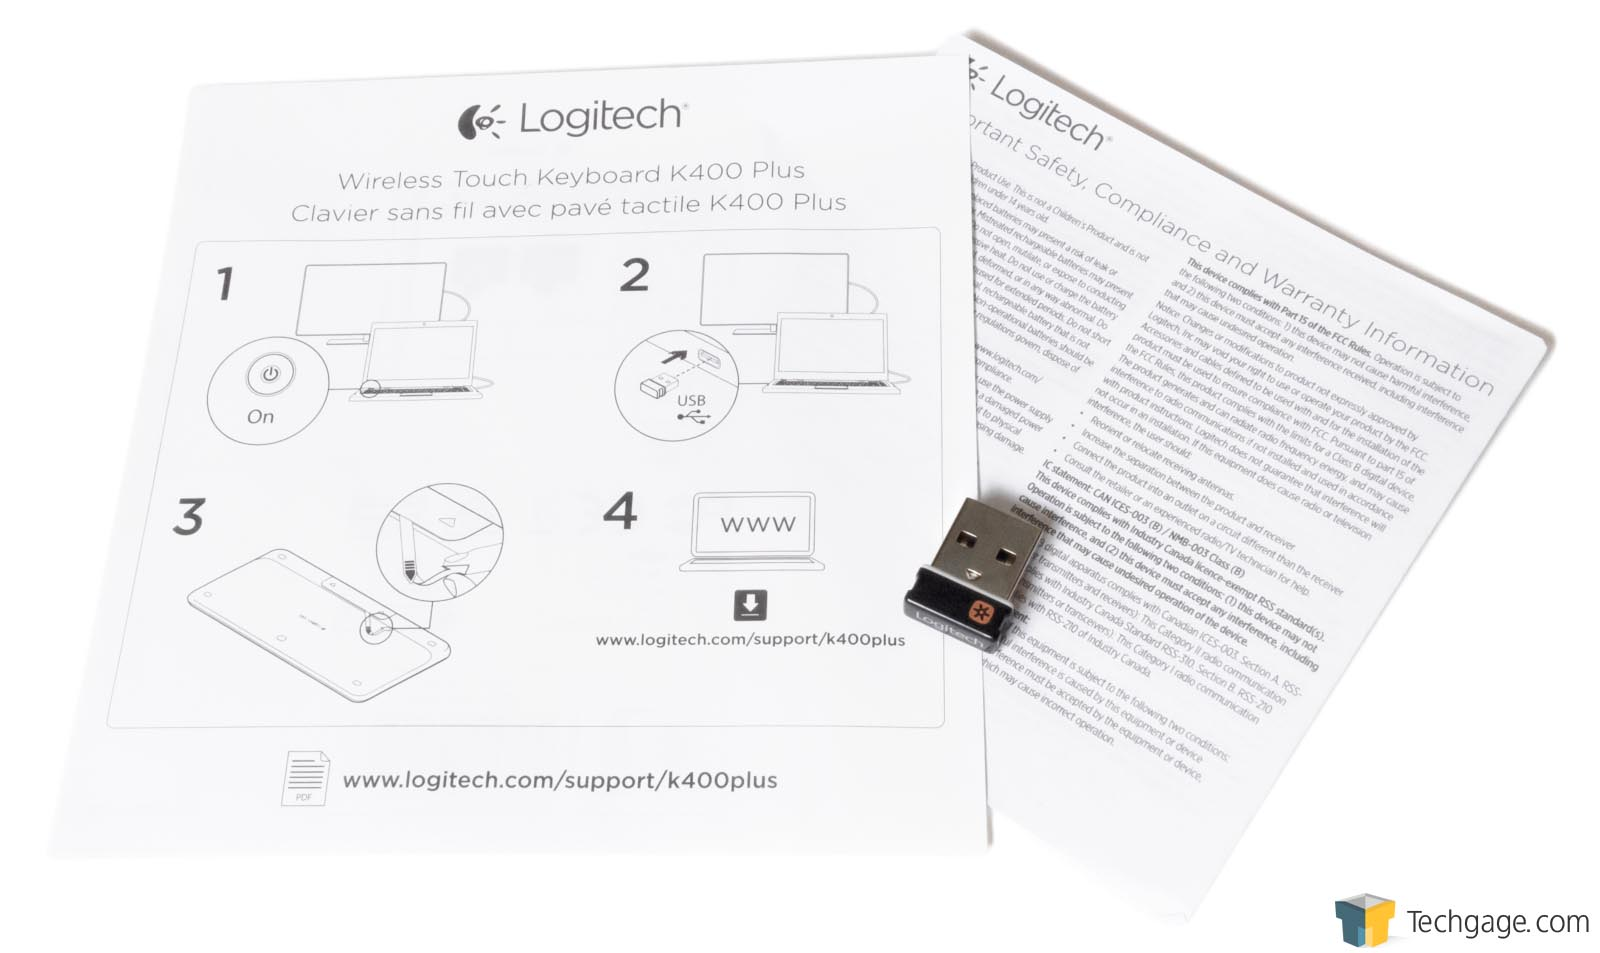 logitech k400 plus instructions